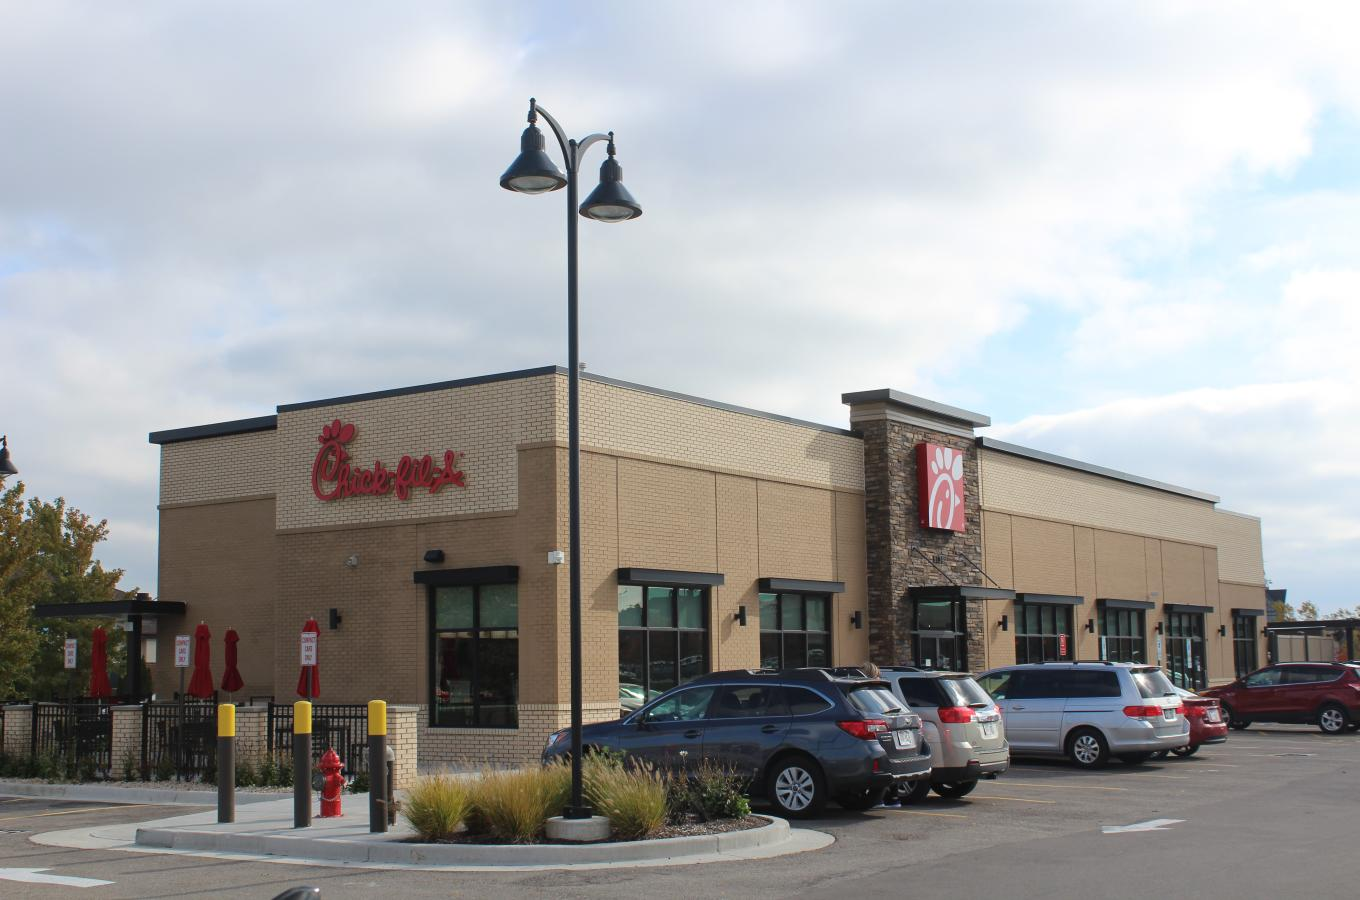 2019 SH Chick-fil-A Storefront